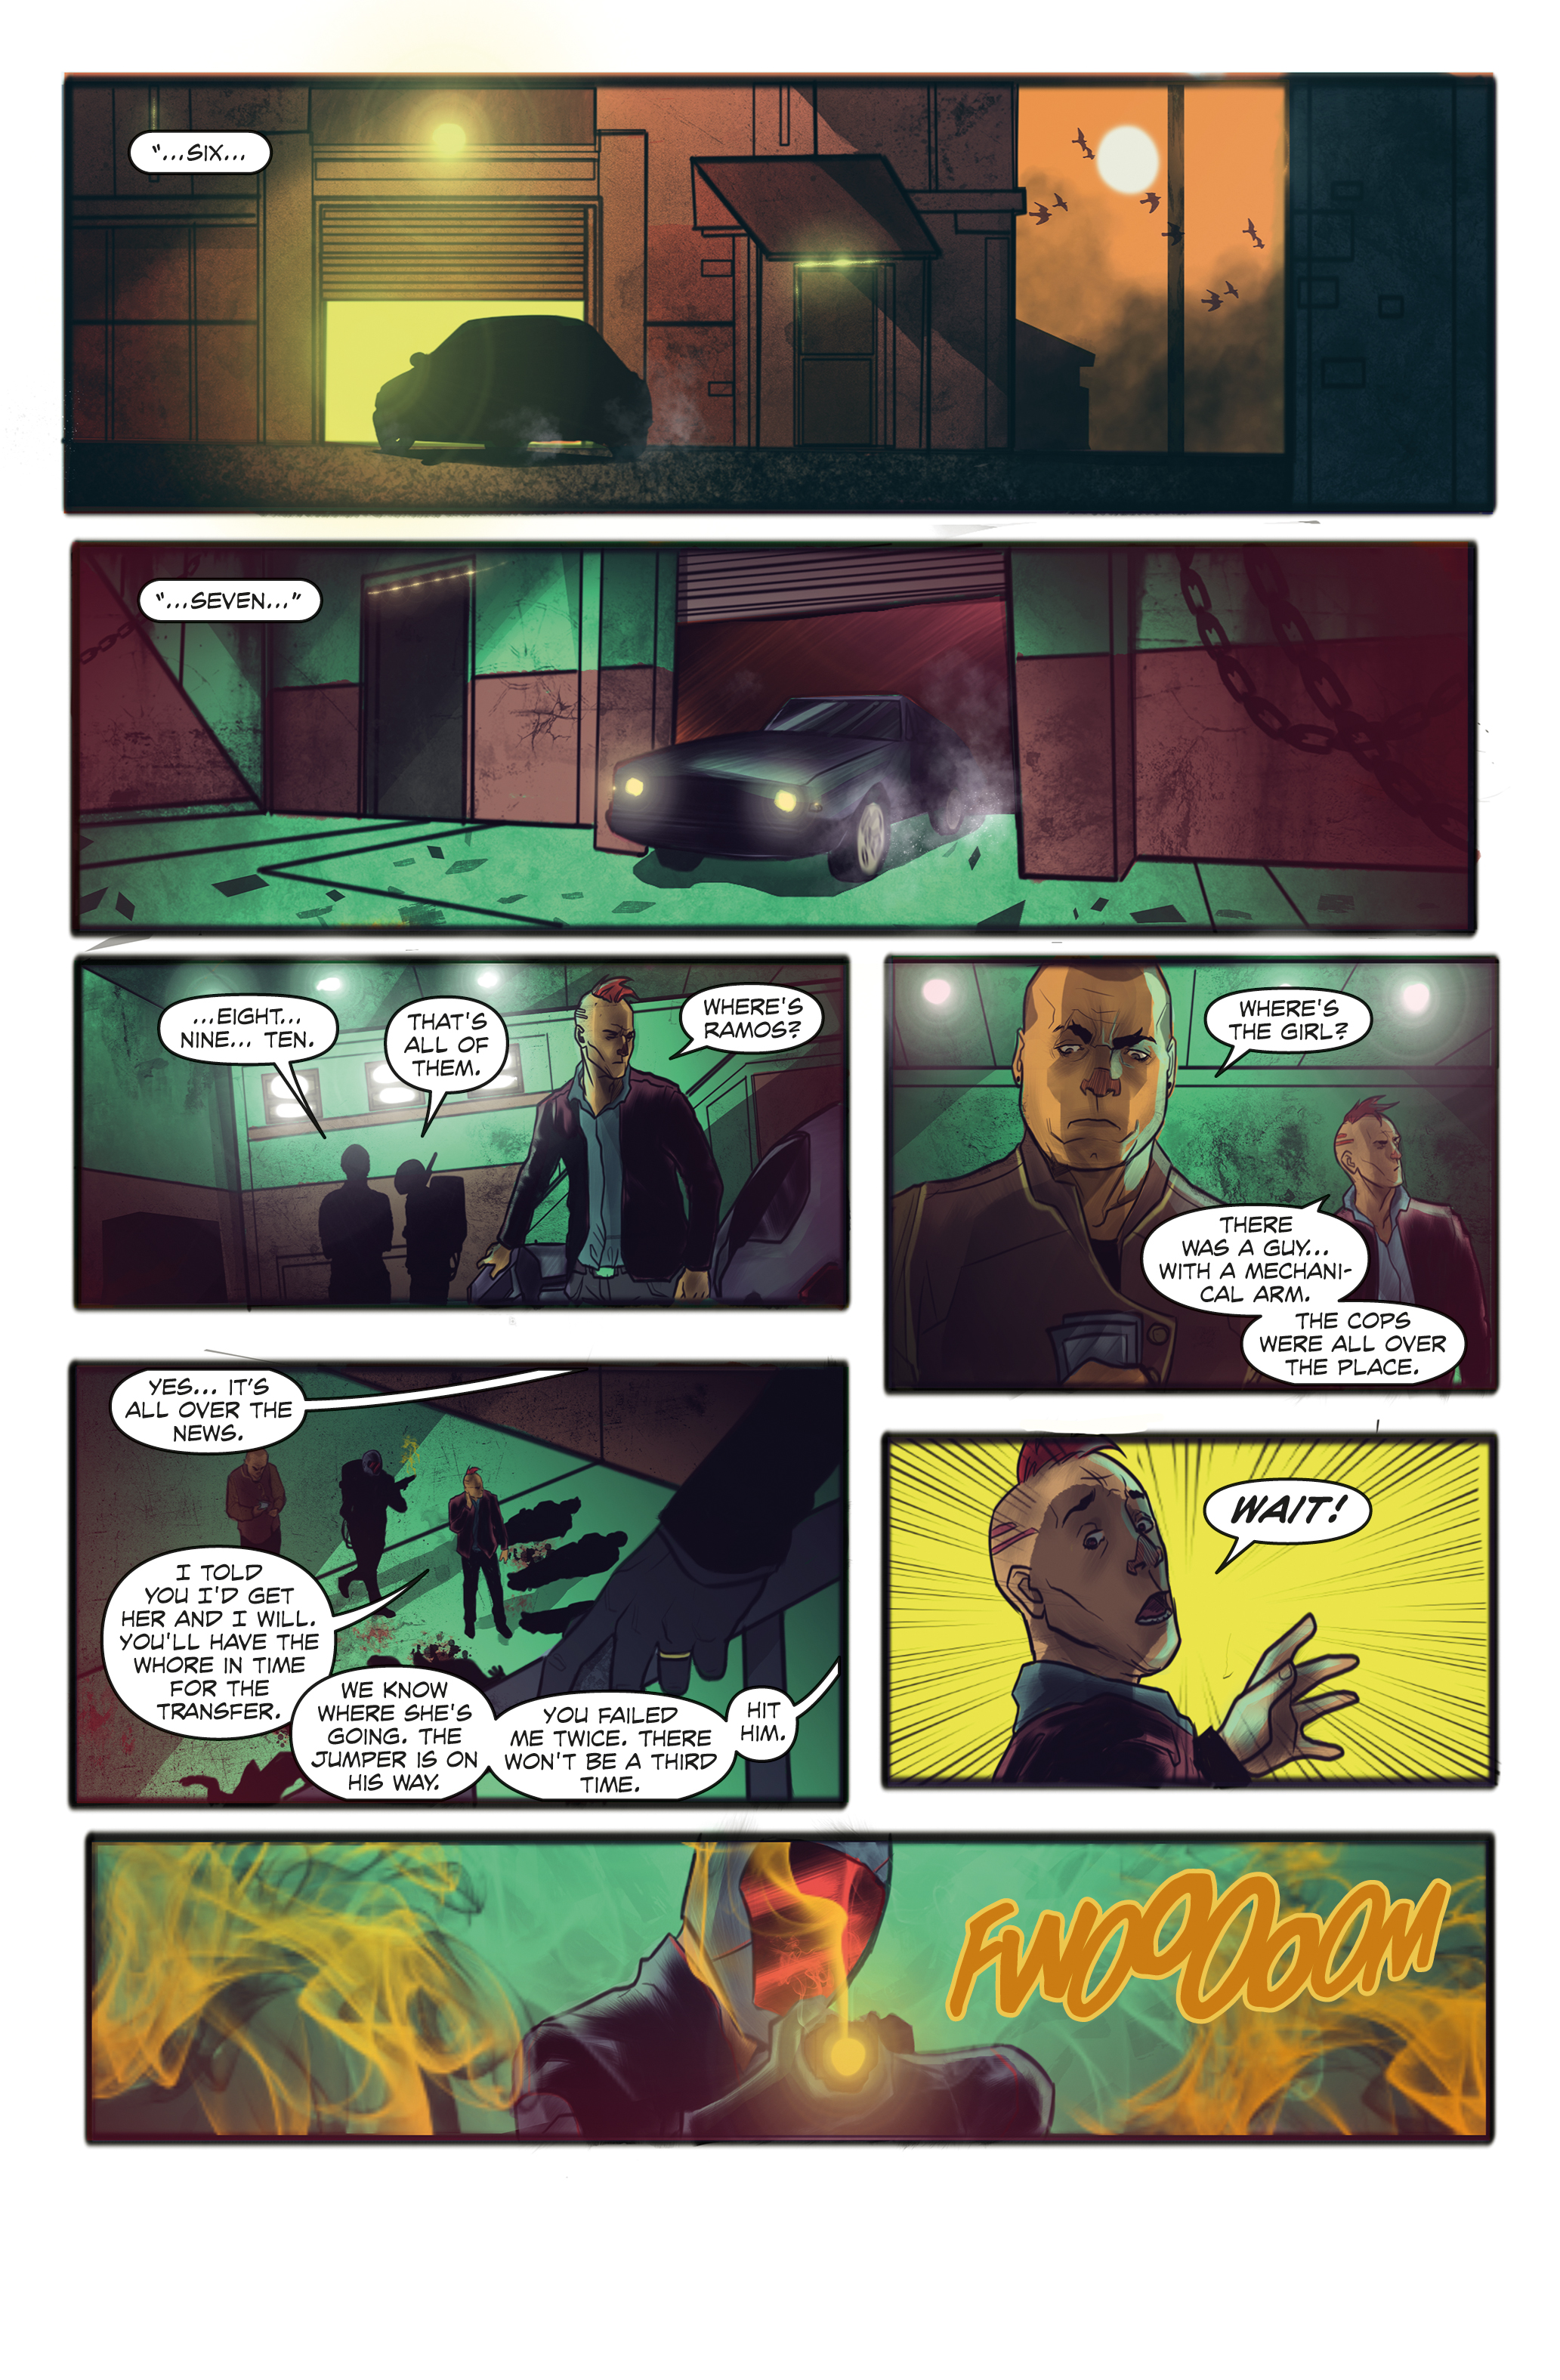 Shelter Division #1 Page 22-01.jpg